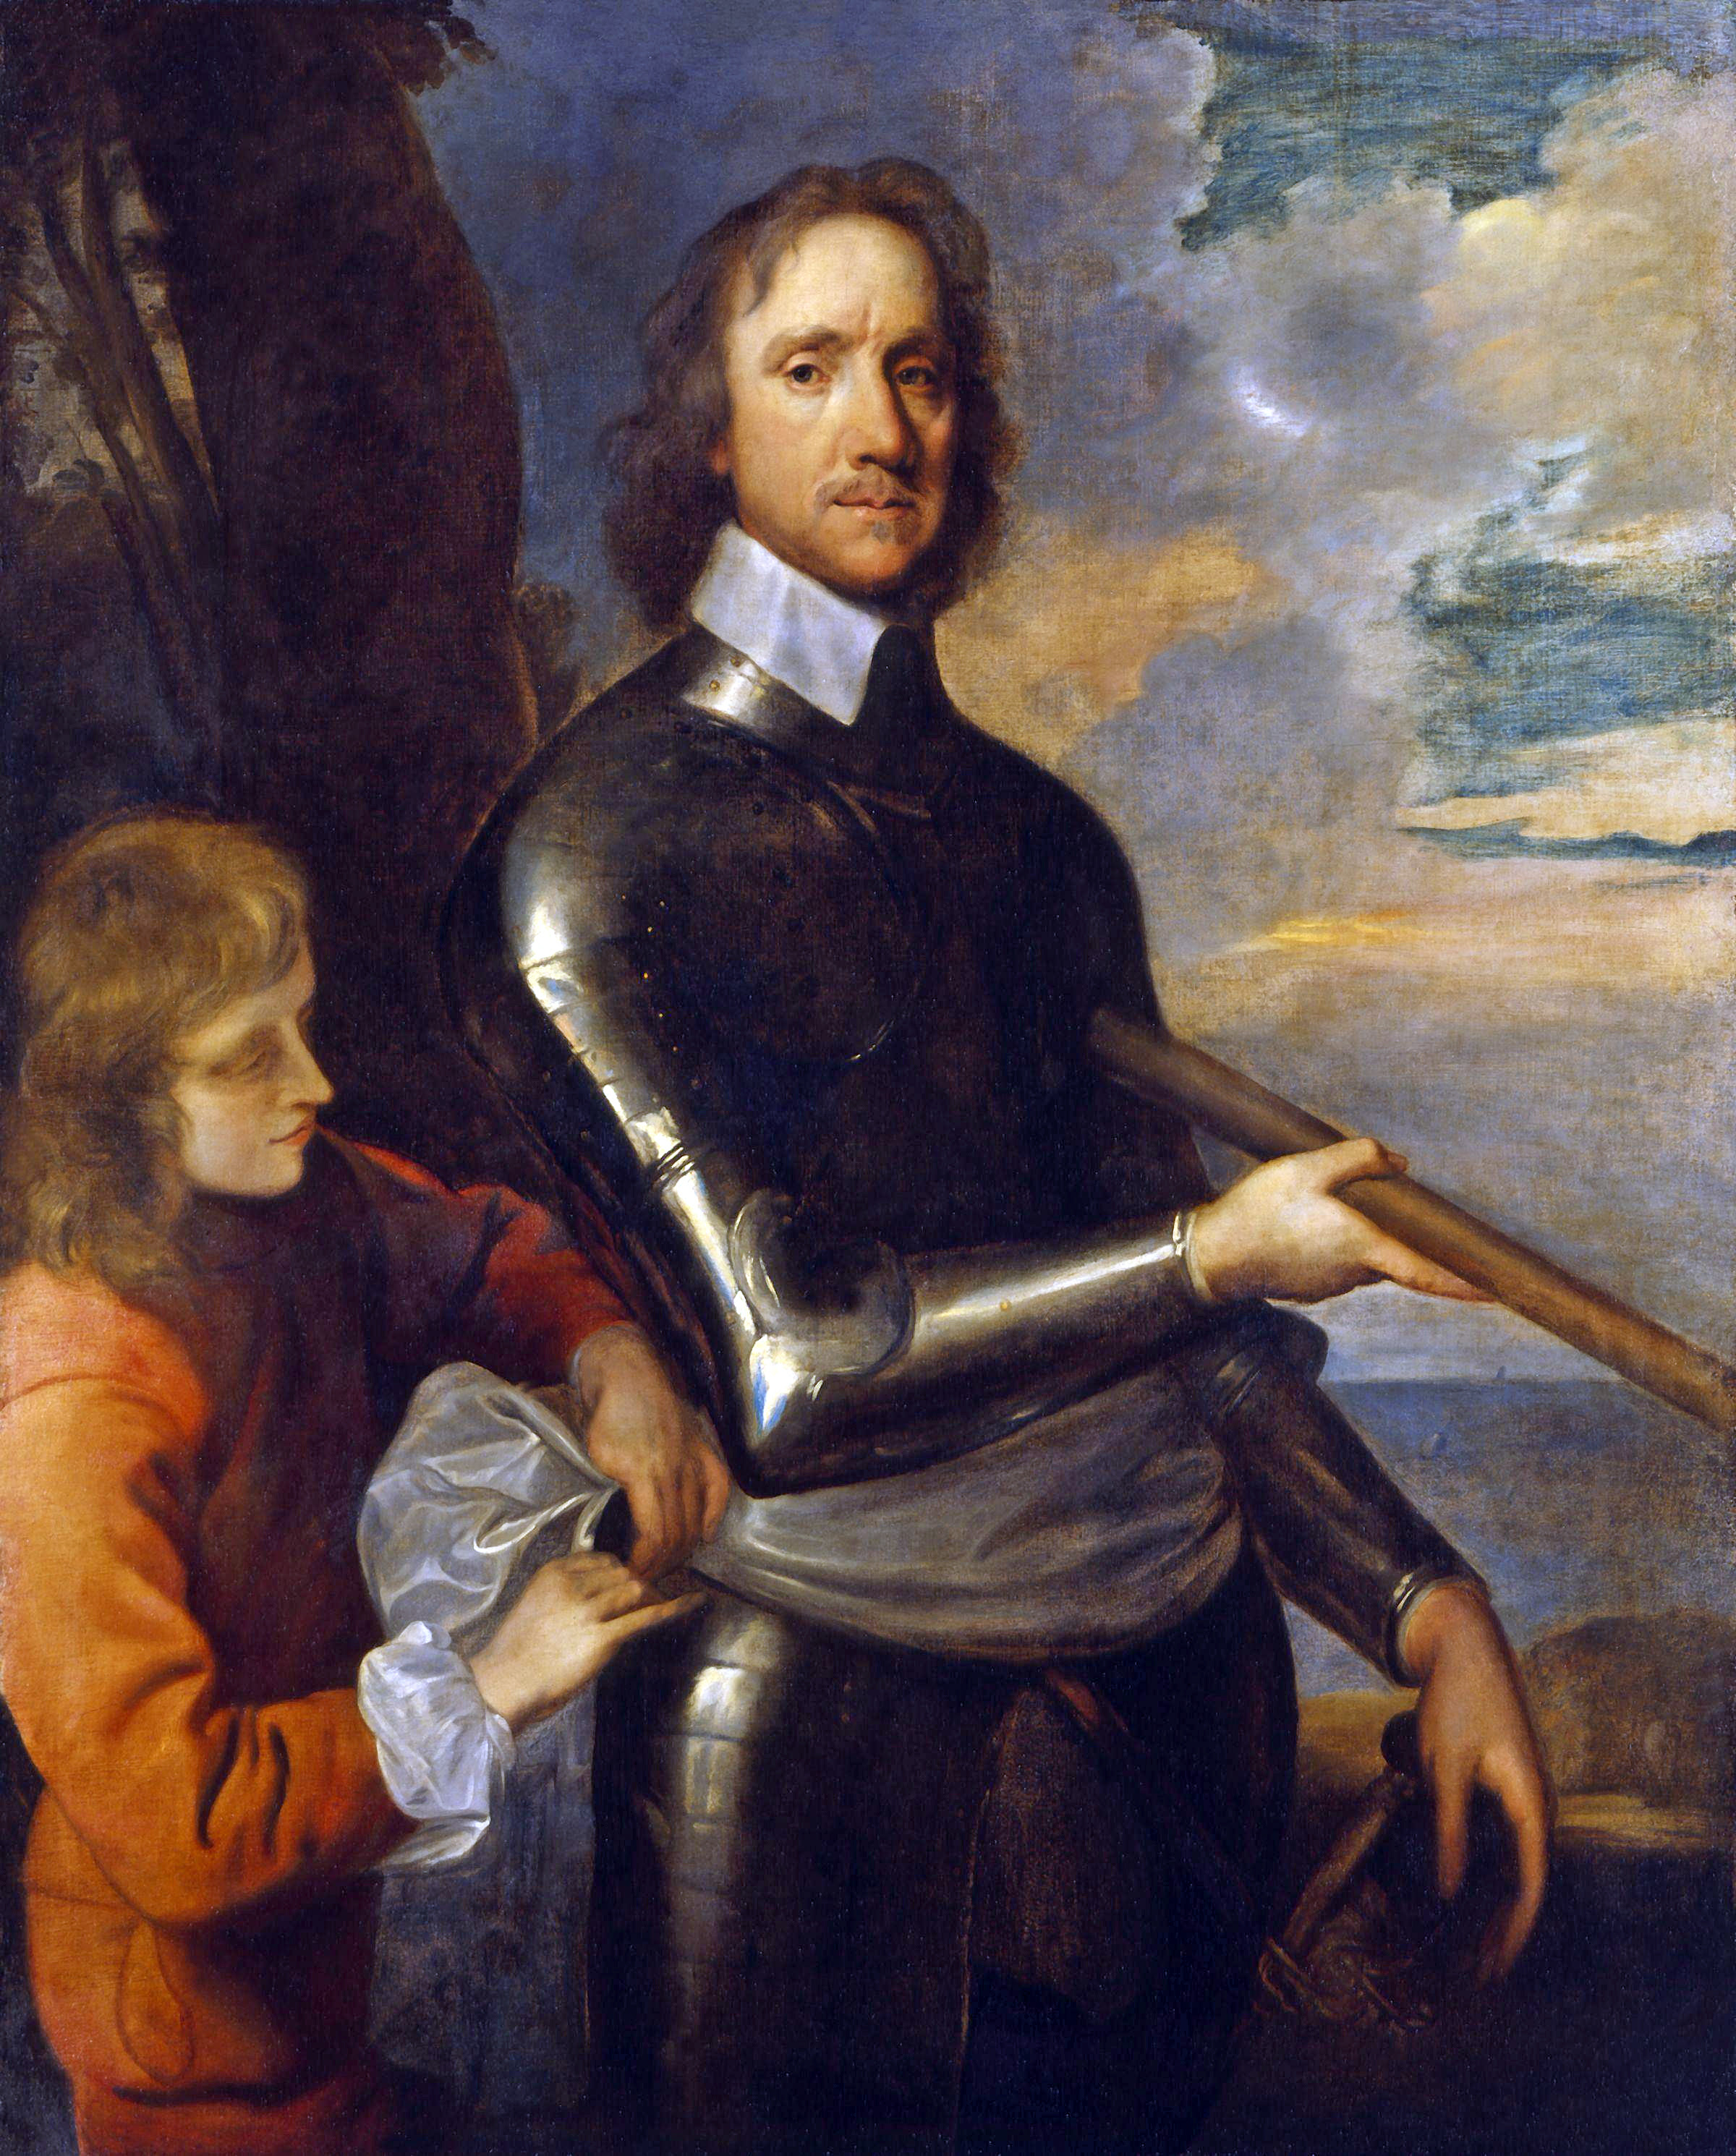 http://upload.wikimedia.org/wikipedia/commons/e/e9/Oliver_Cromwell_by_Robert_Walker.jpg